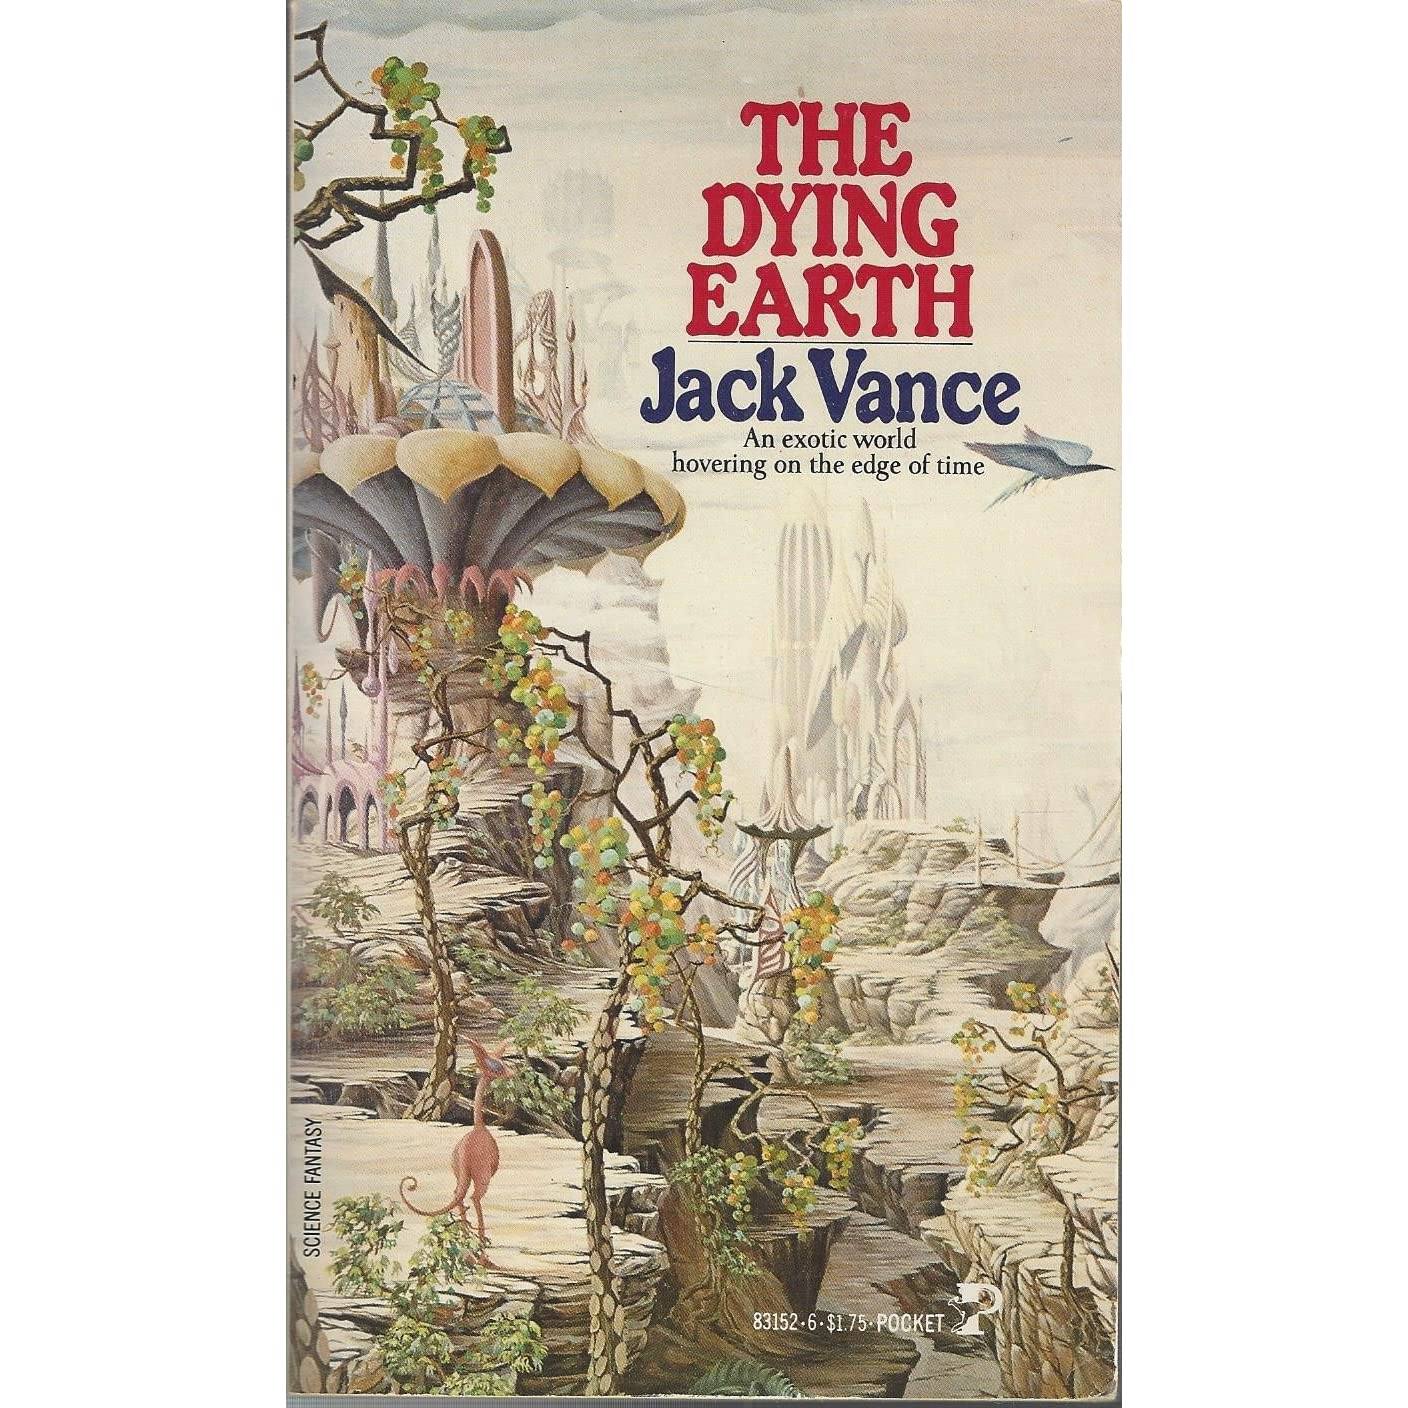 The Dying Earth (The Dying Earth, #1) by Jack Vance